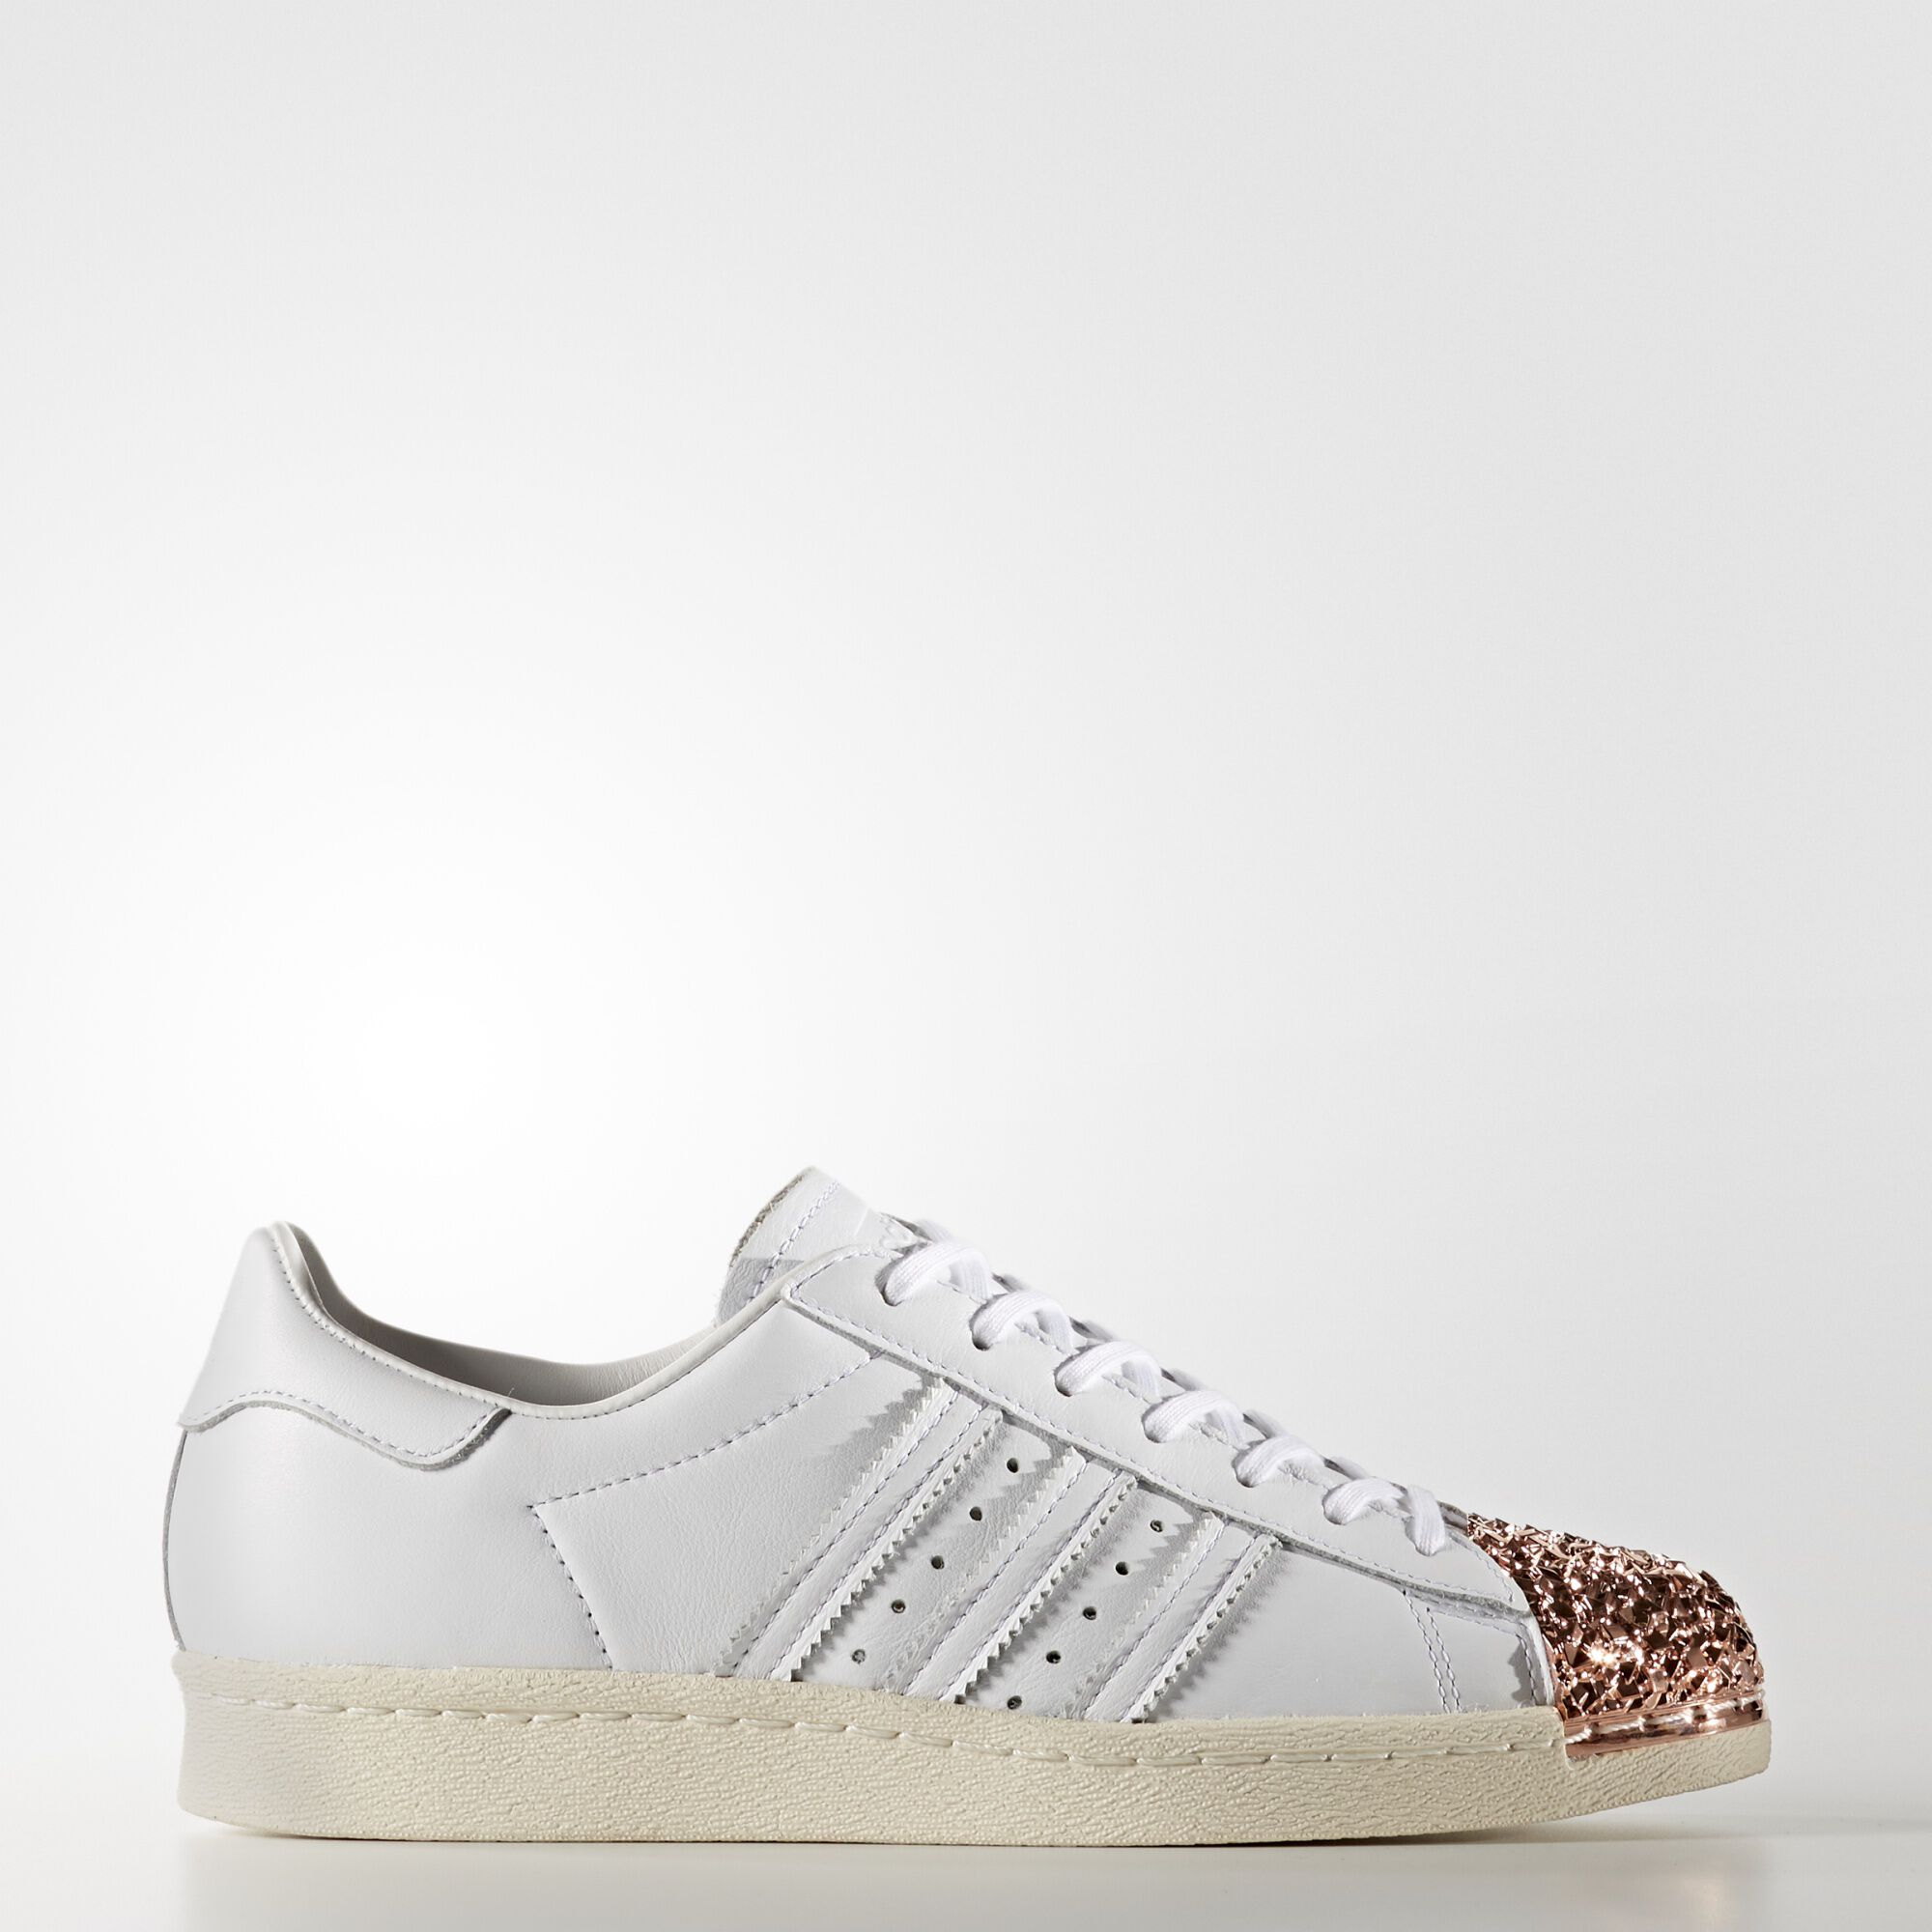 Adidas Superstars Olivgrün